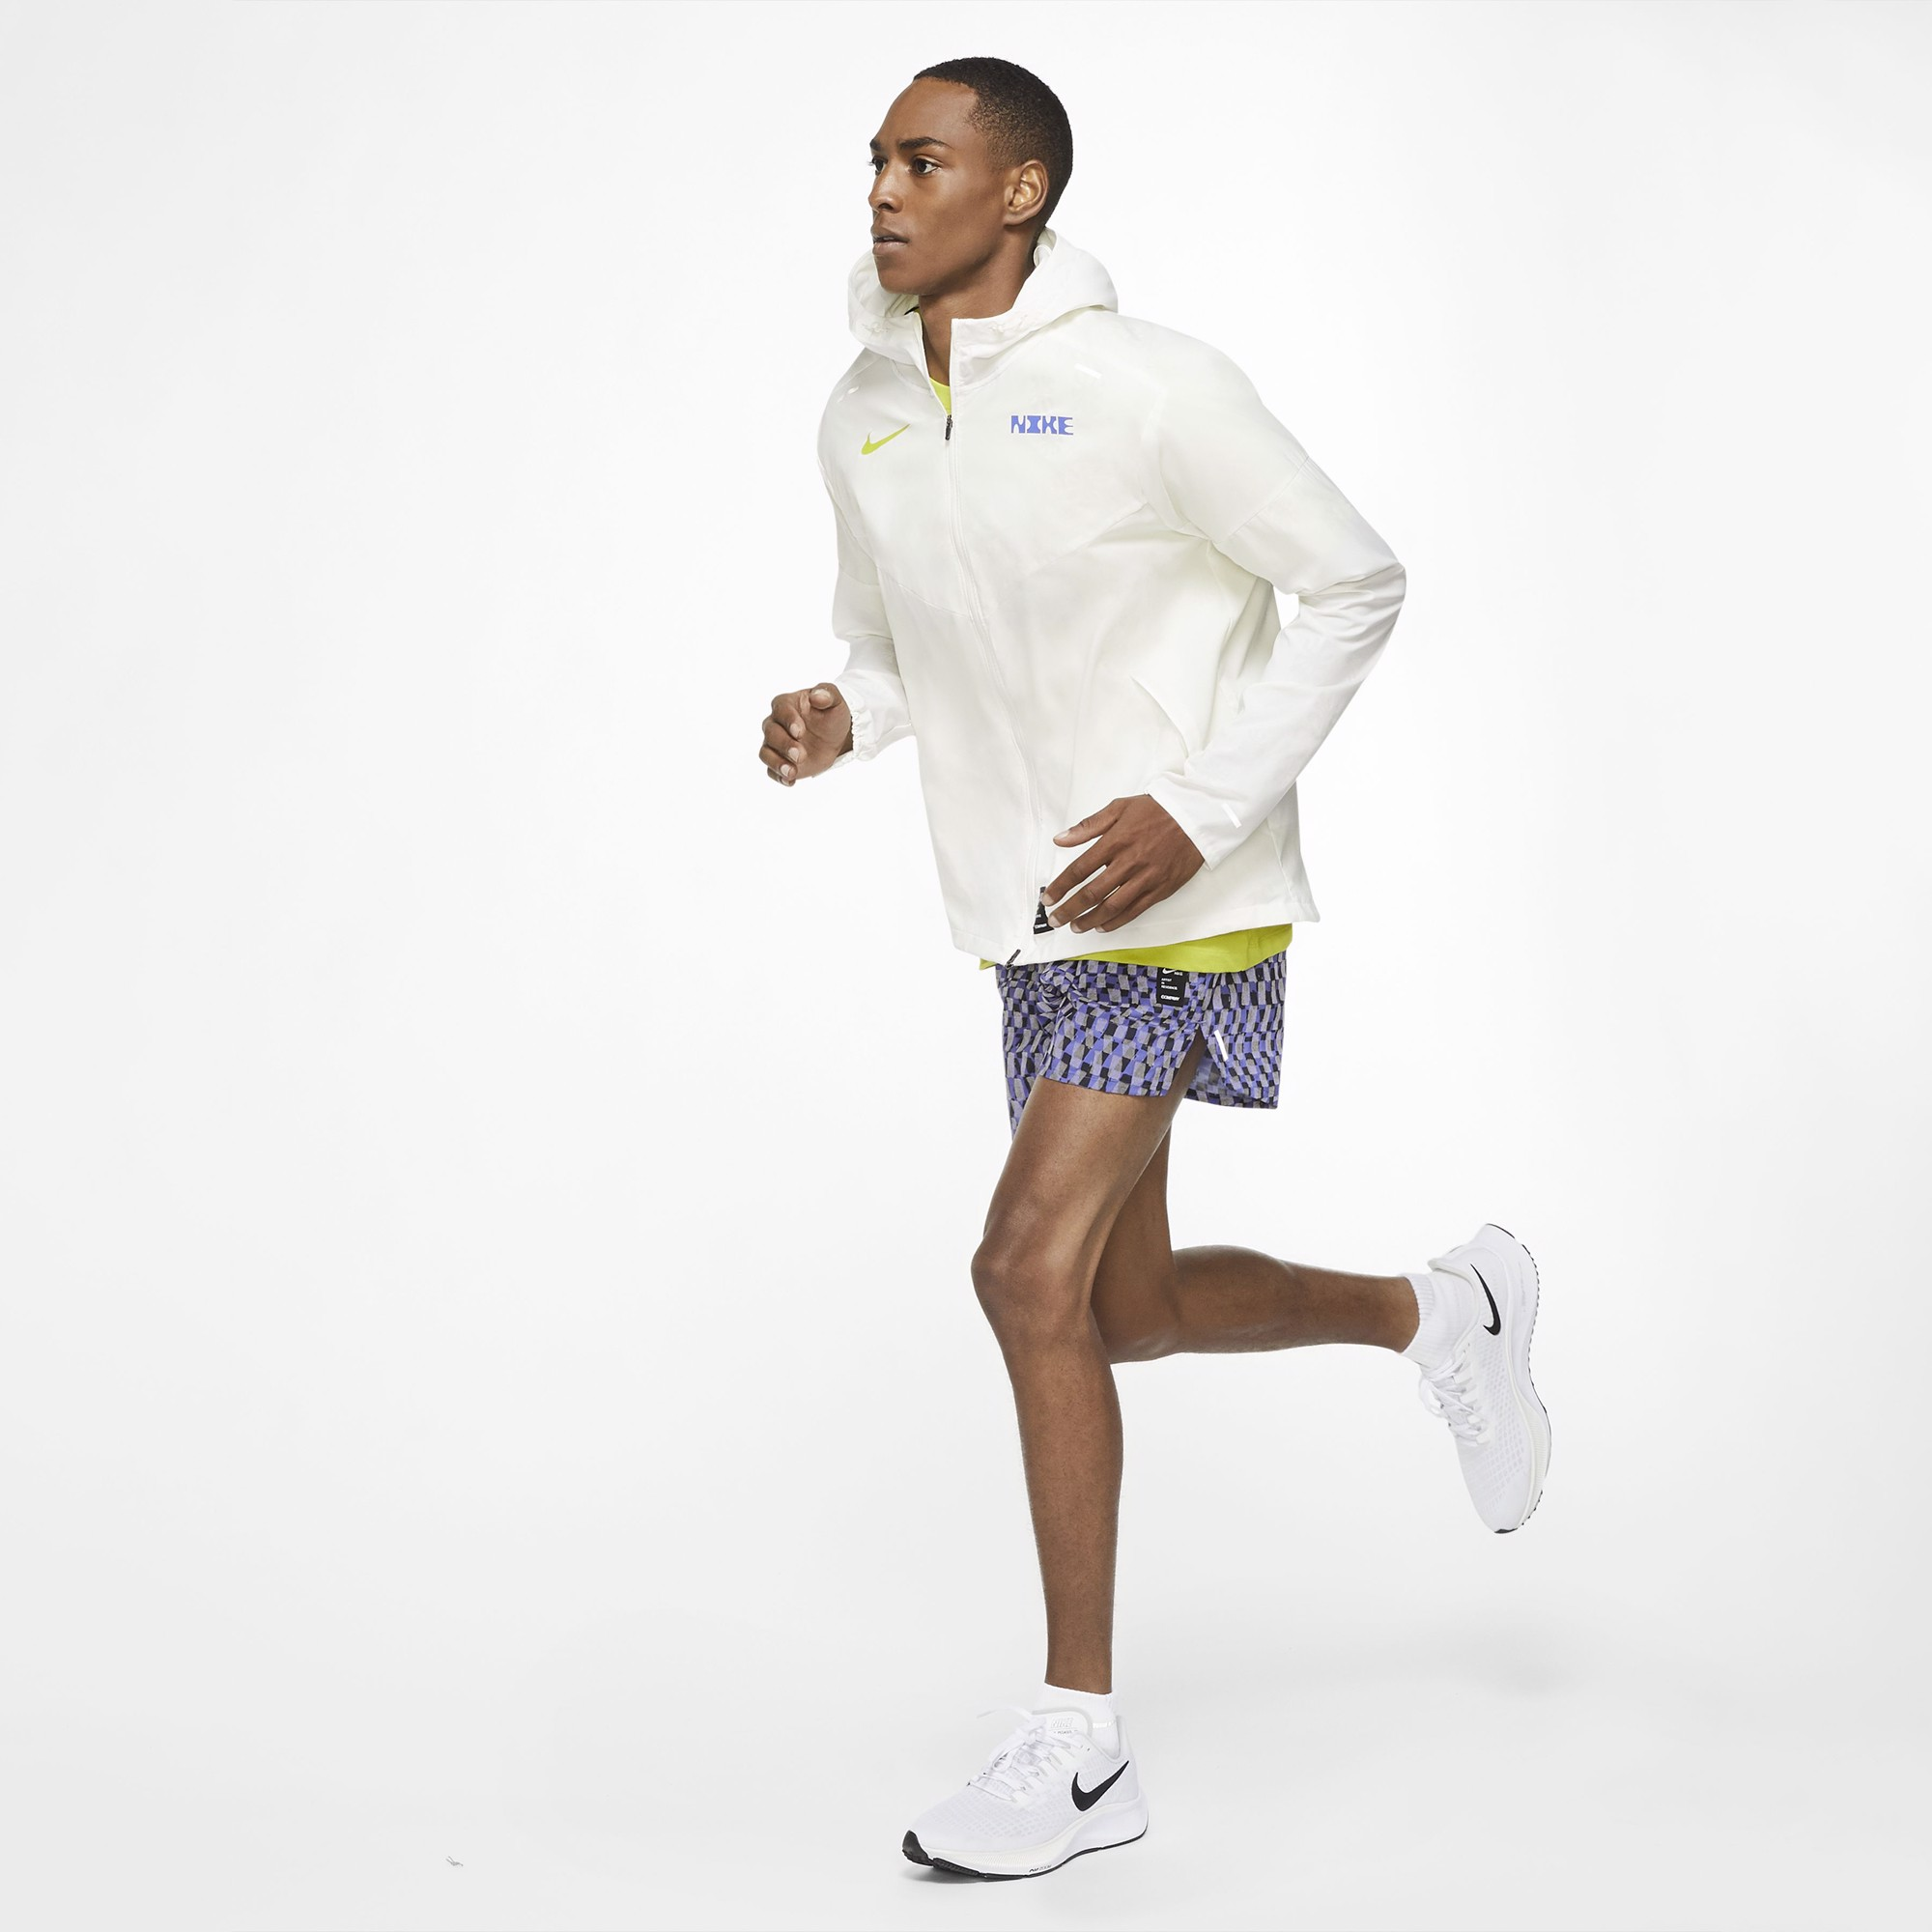 Nike Windrunner AIR Jacket by Chaz Bundick